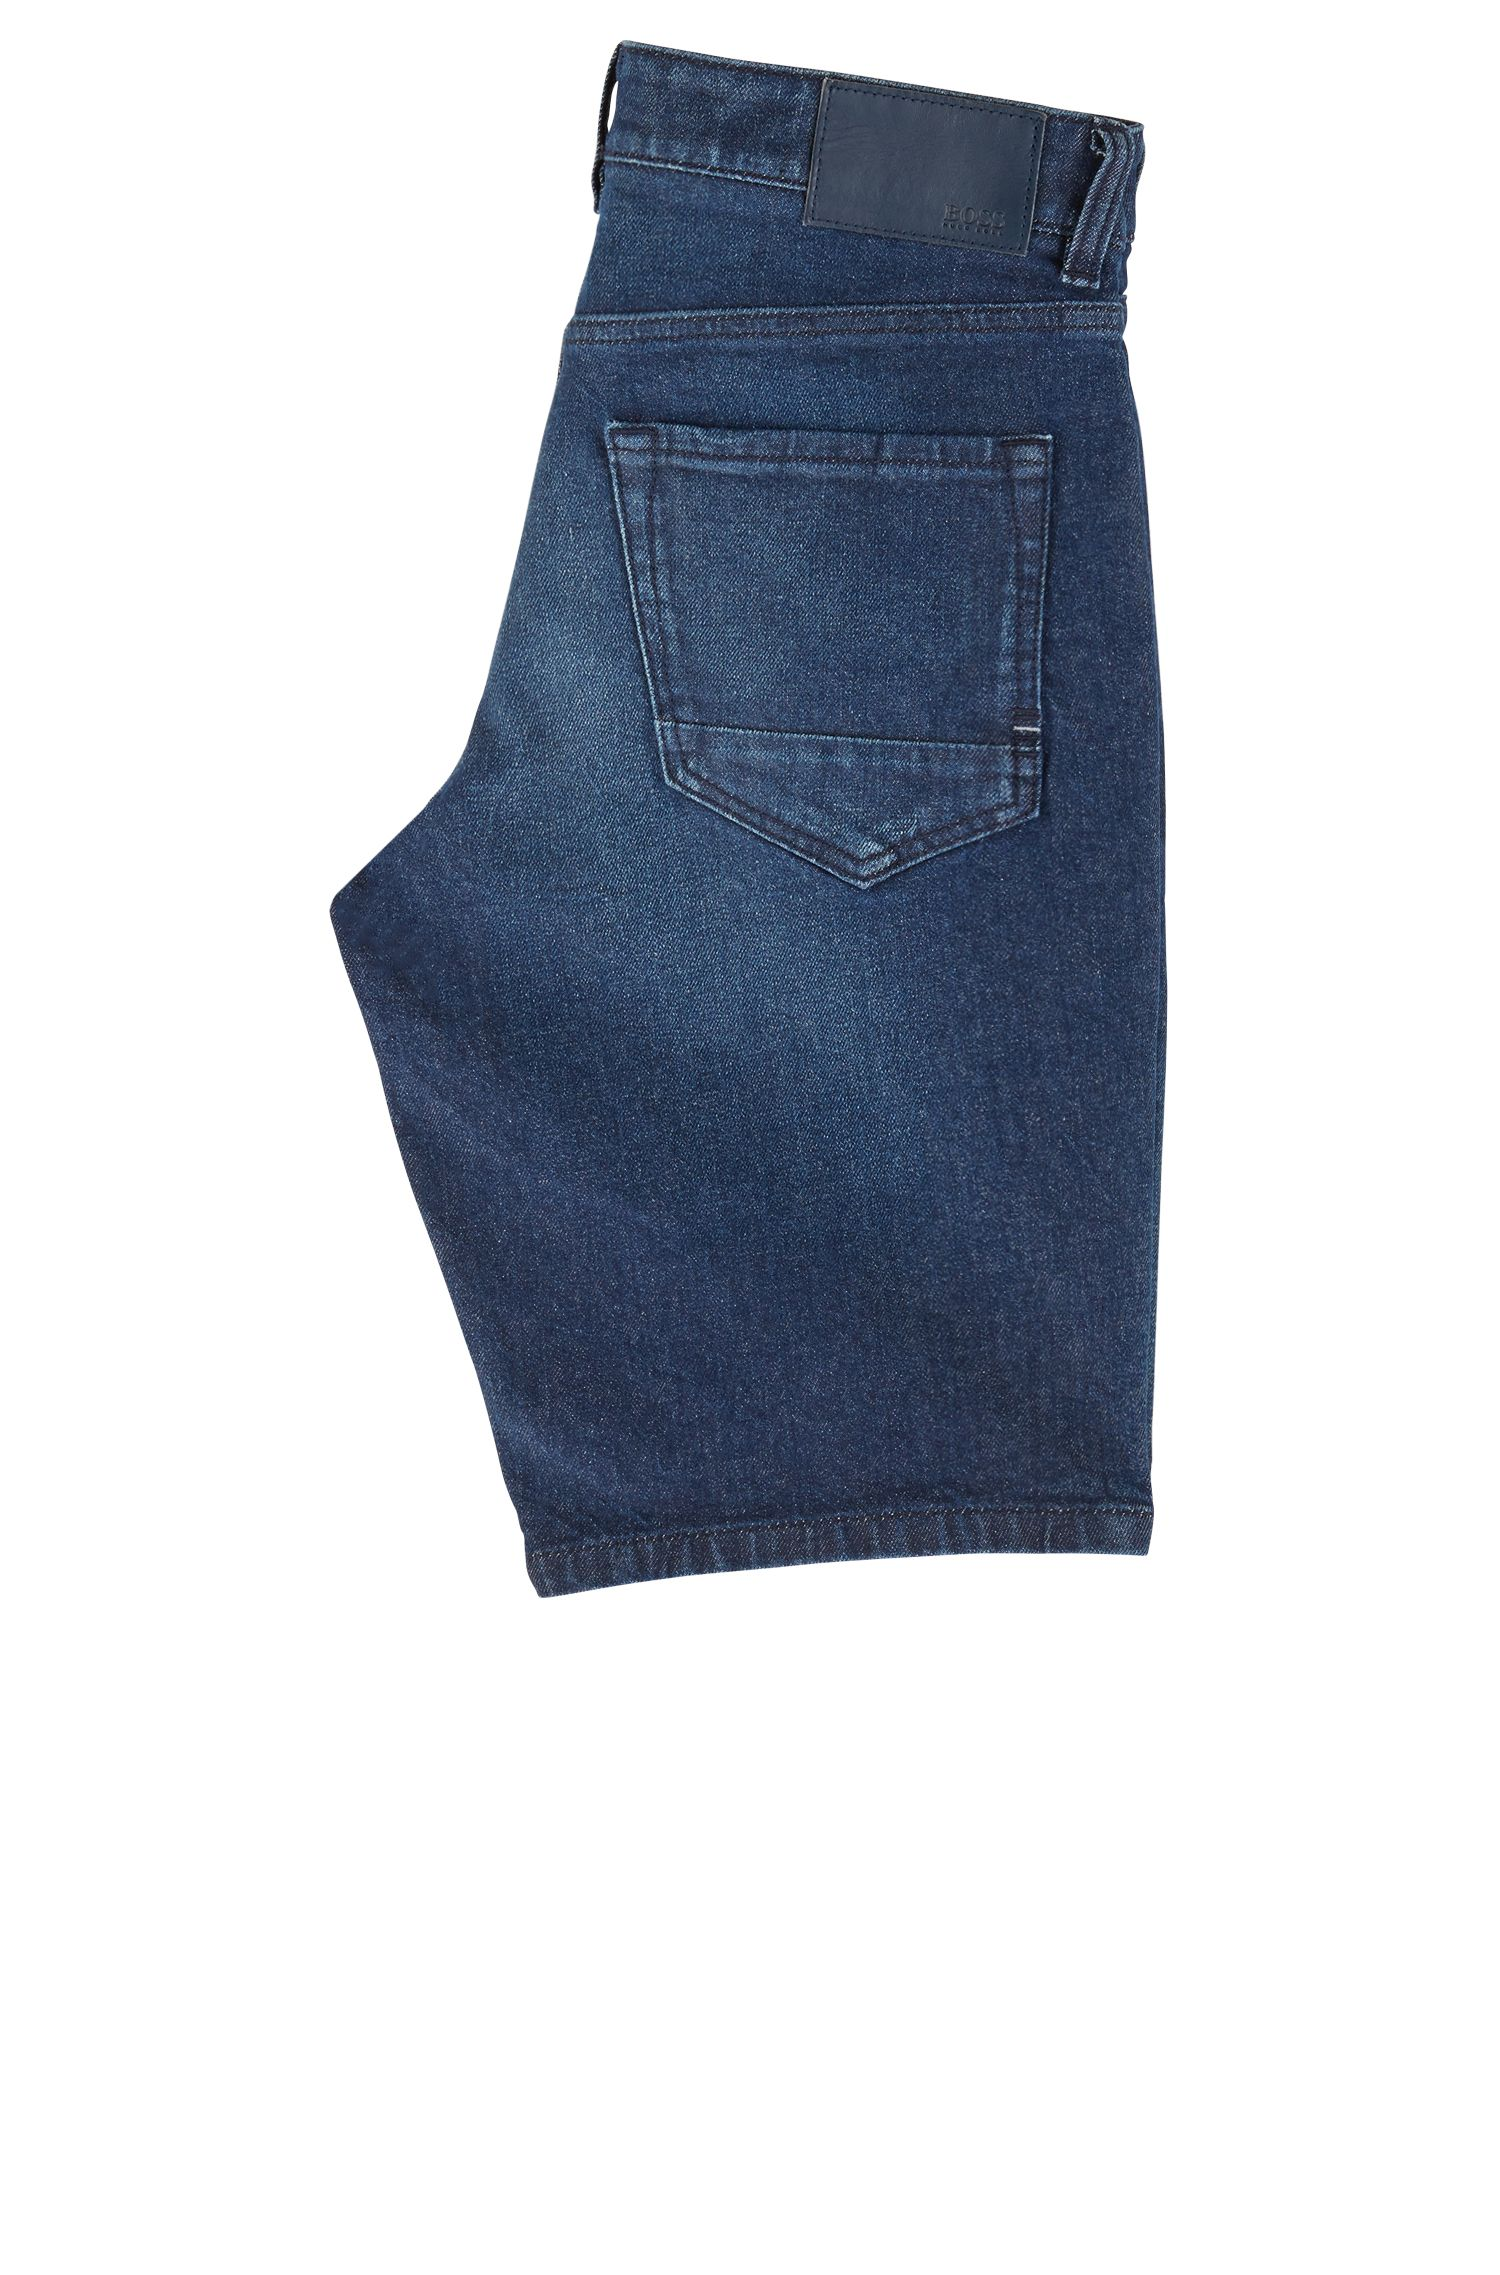 Pantaloncini regular fit in denim blu vintage con effetti usati, Blu scuro